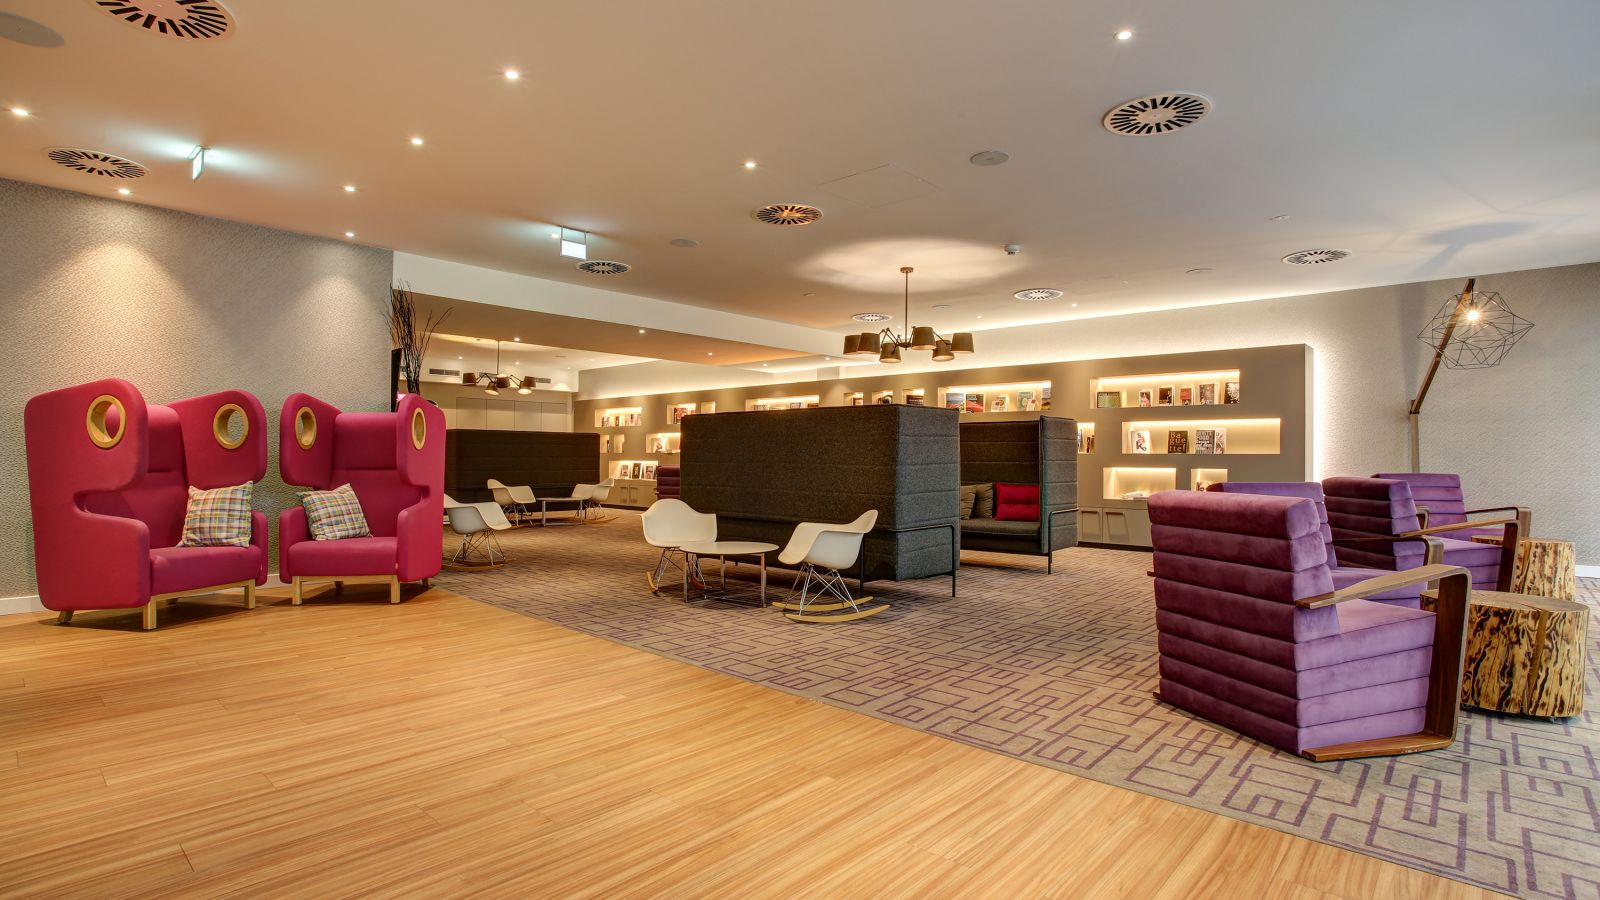 Free WiFi, Apple workstation, and plenty of room for conversations in the lobby at FourSide Hotel Braunschweig.